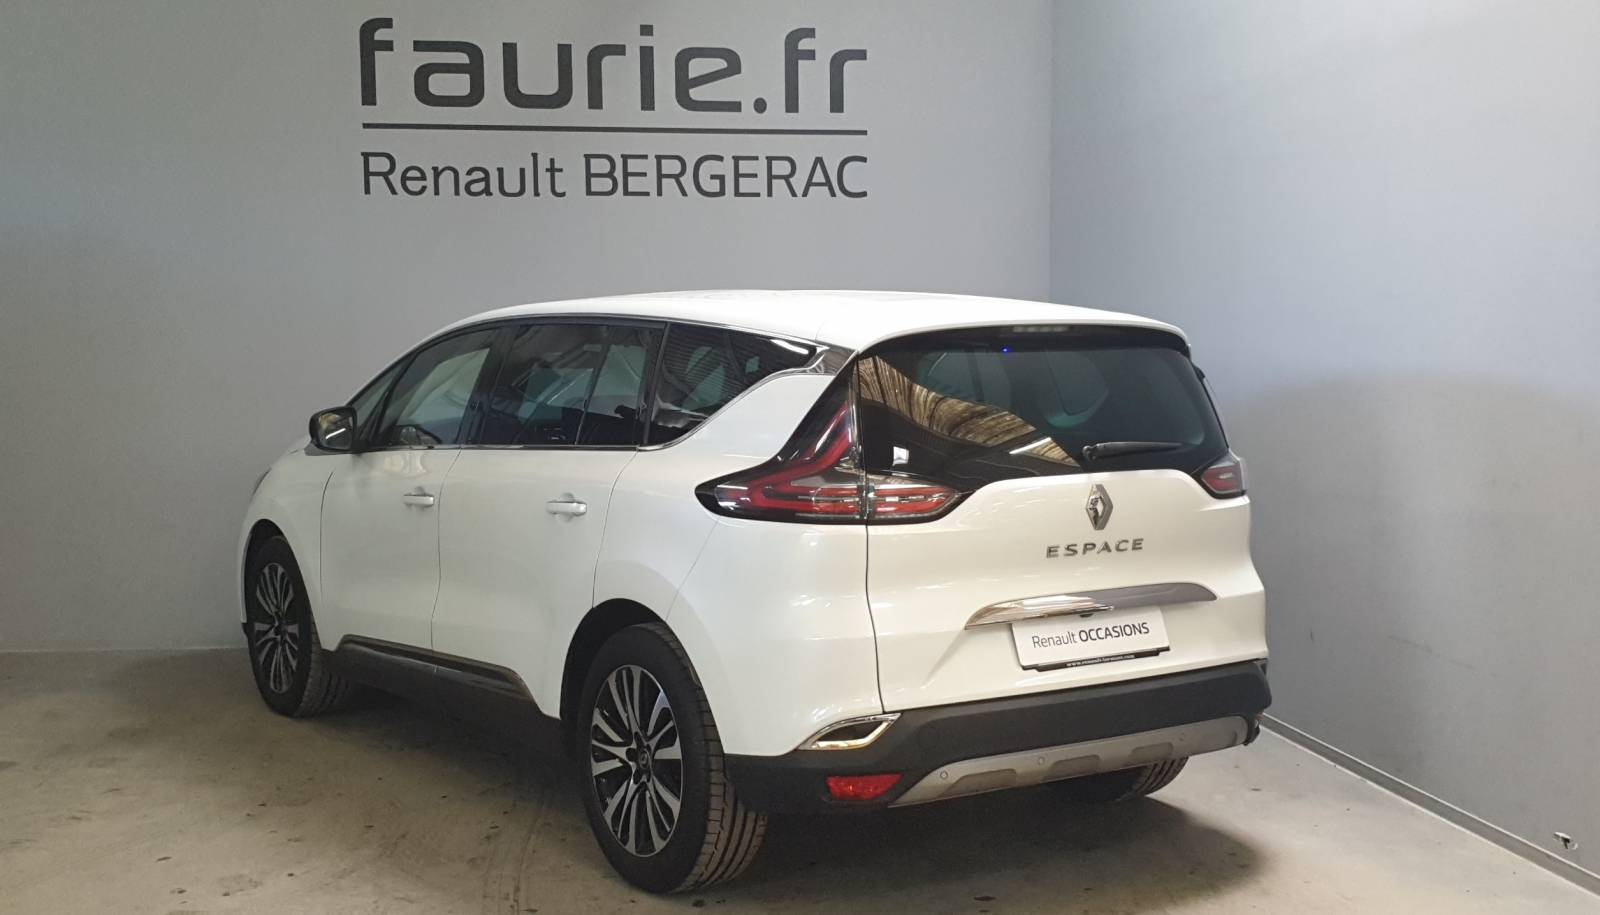 RENAULT Espace dCi 160 Energy Twin Turbo - véhicule d'occasion - Site Internet Faurie - Renault - Faurie Auto Bergerac - 24100 - Bergerac - 8